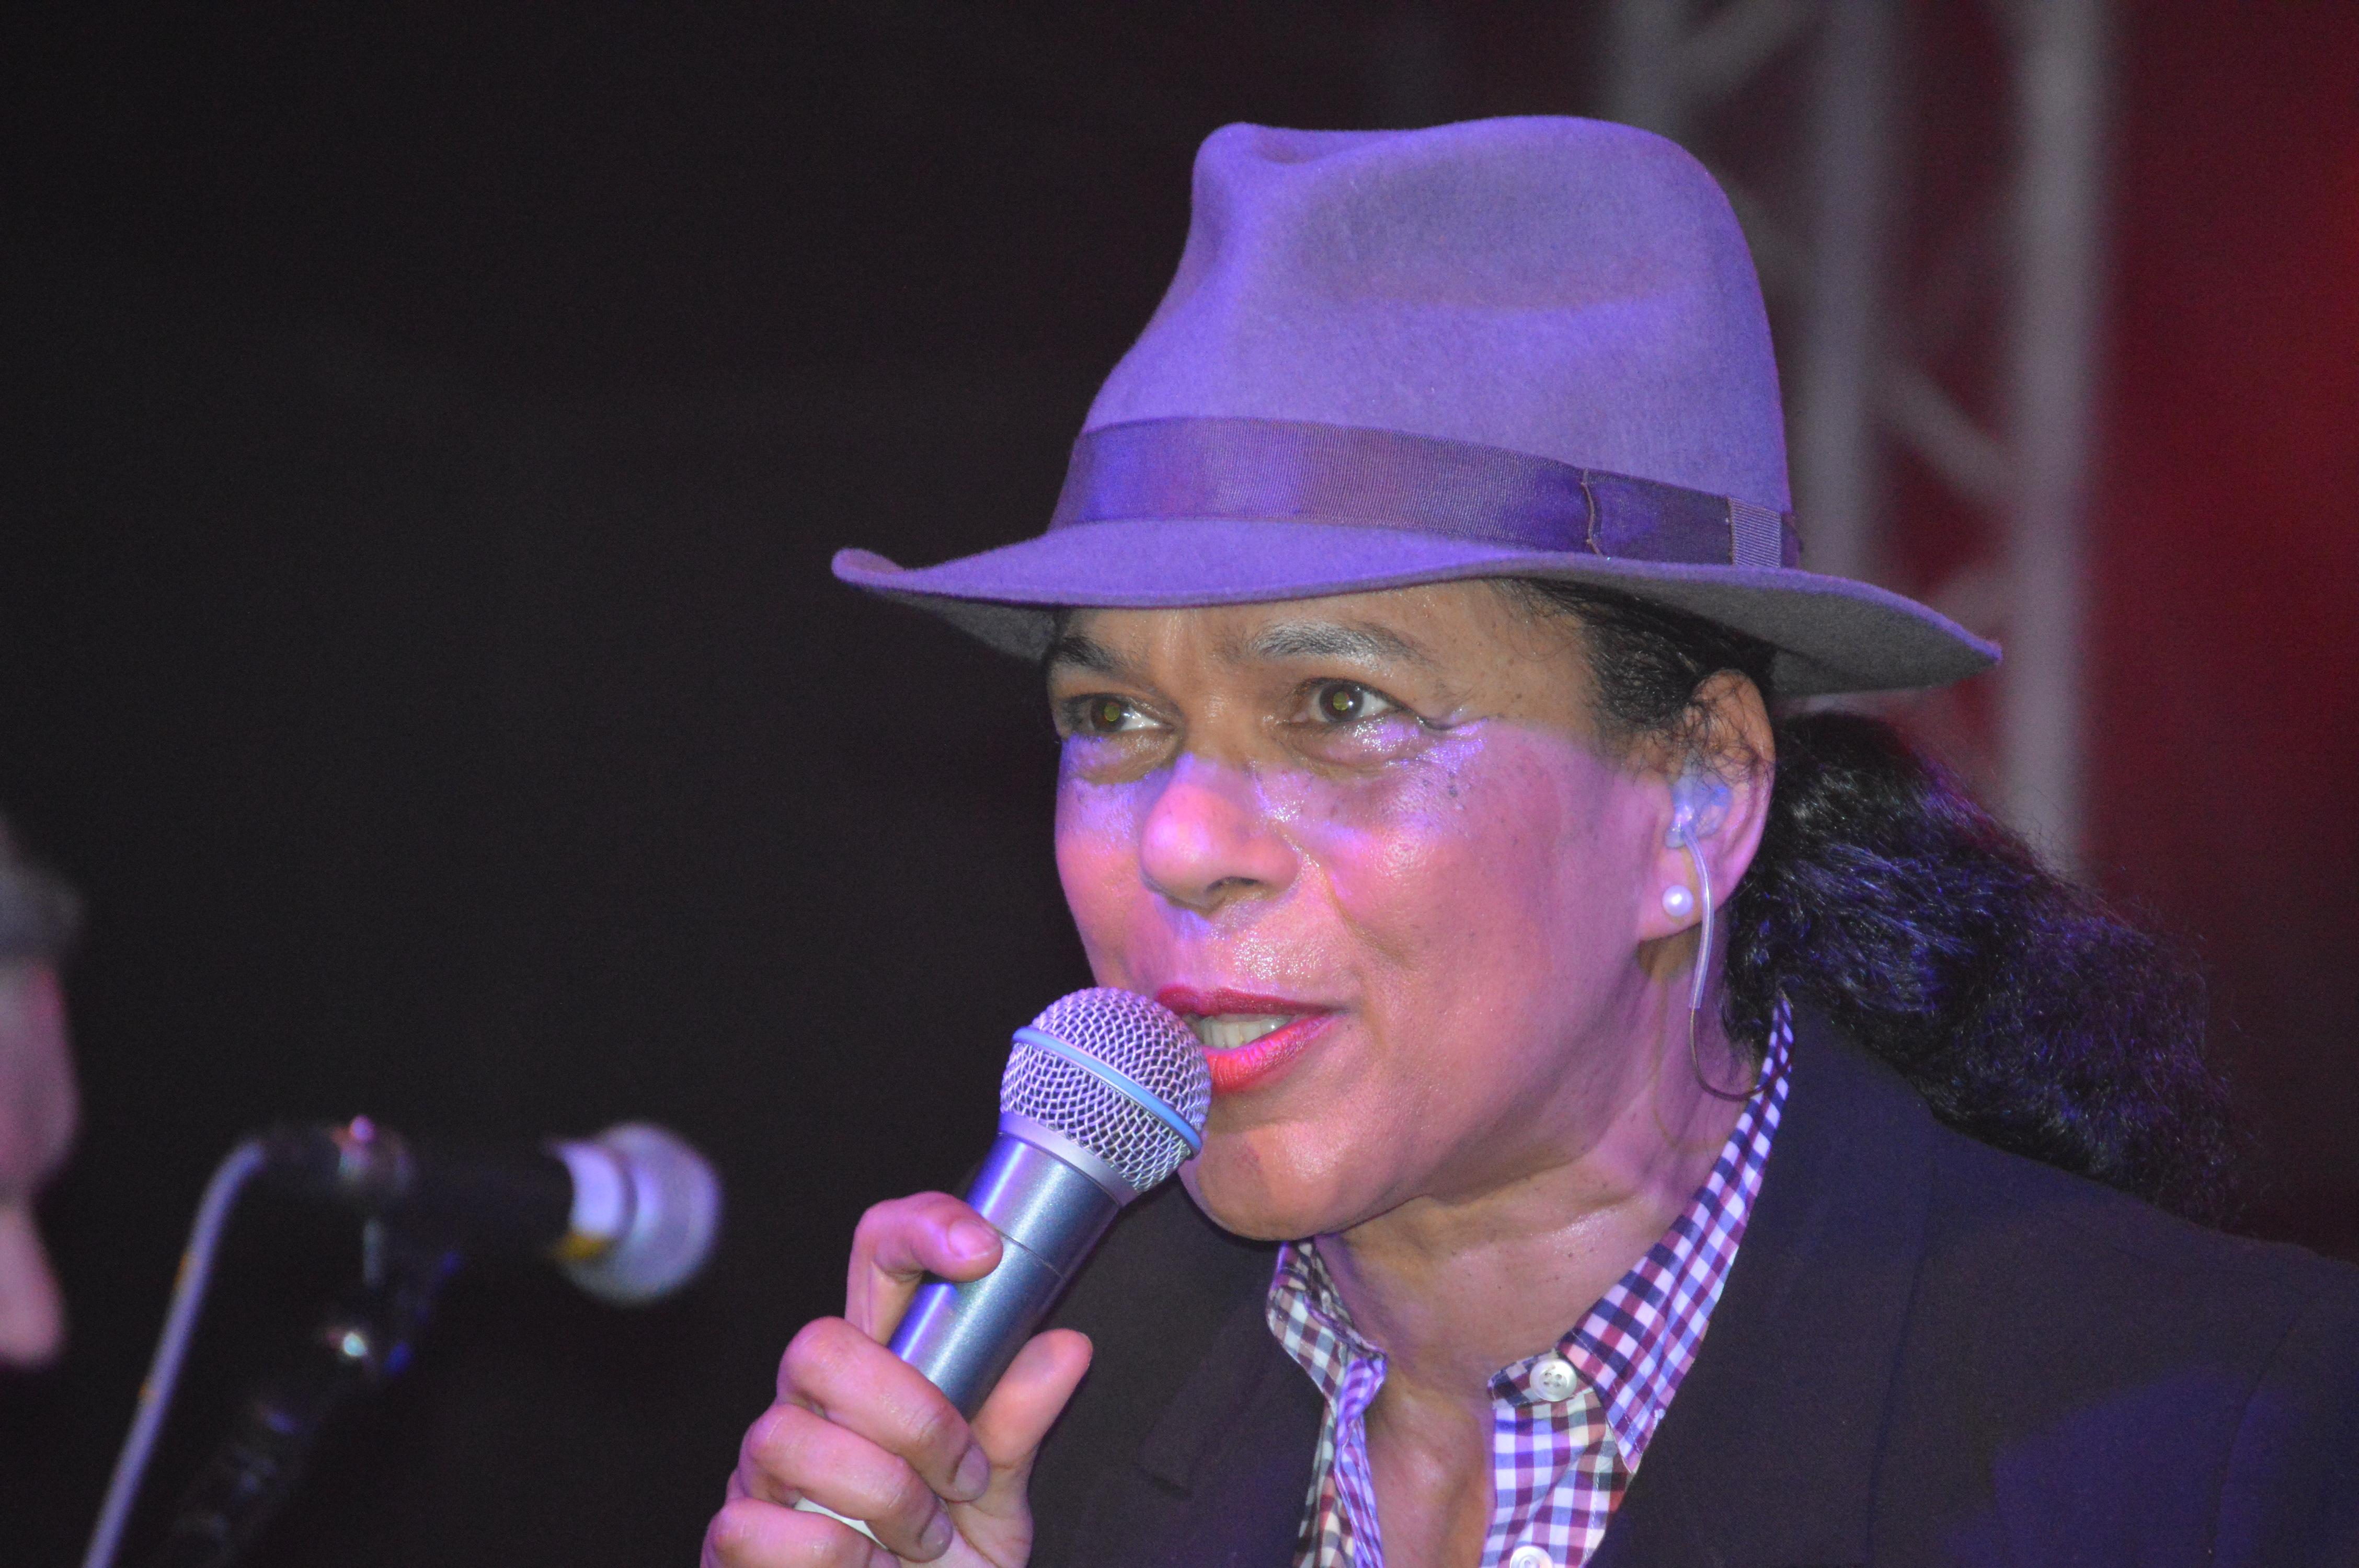 pauline black dating site The selecter are a 2 tone ska revival band from coventry, england, formed in mid-1979 the selecter featured a racially diverse line-up their lyrics featured themes connected to politics reinforcing the songs of neol davies were the voice and rude girl style of pauline black and the rhythms of .